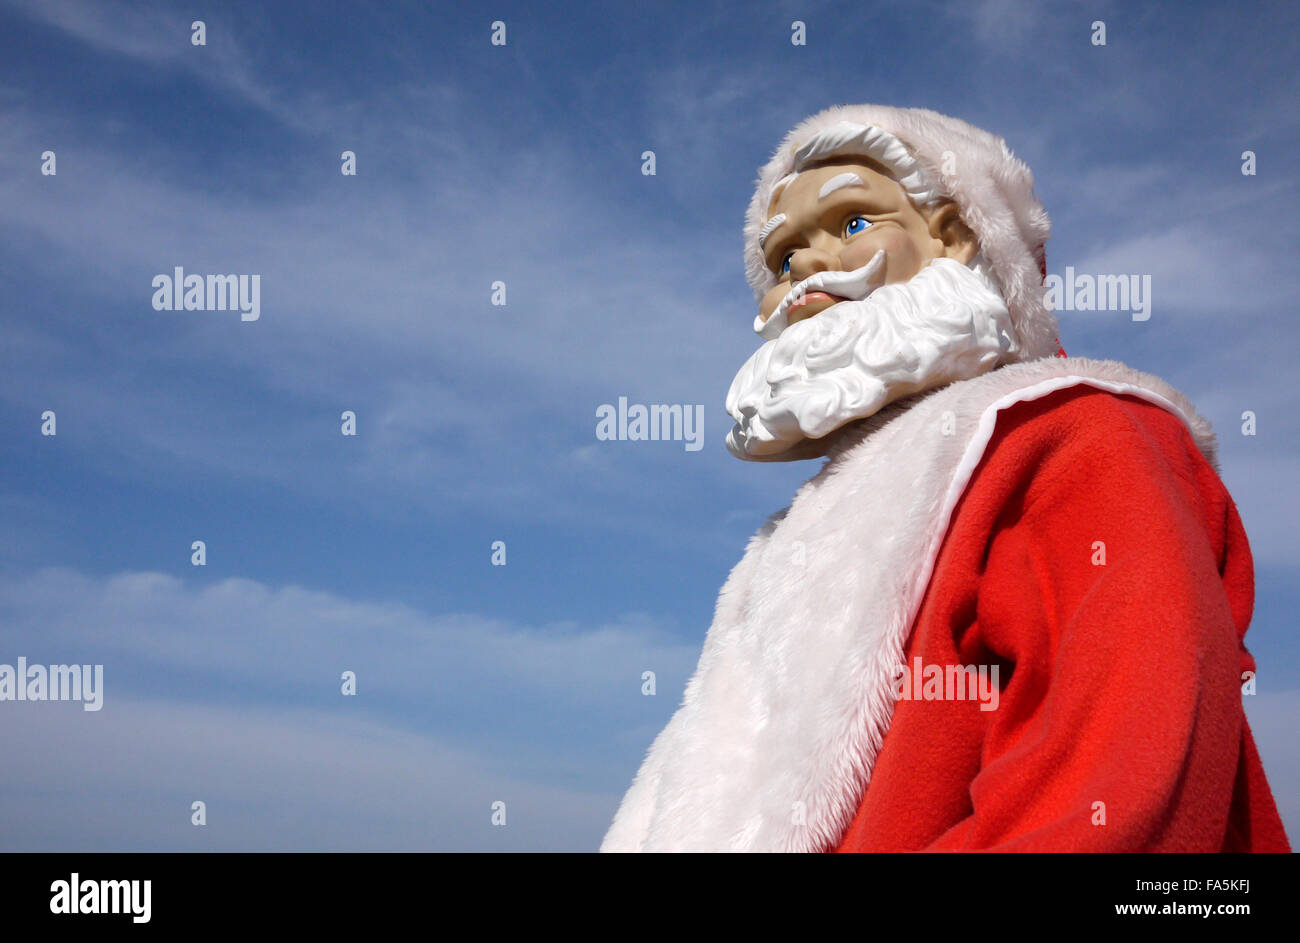 A Santa Claus manikin with a frowning worried apprehensive looking expression pictured outdoors under a blue sky - Stock Image